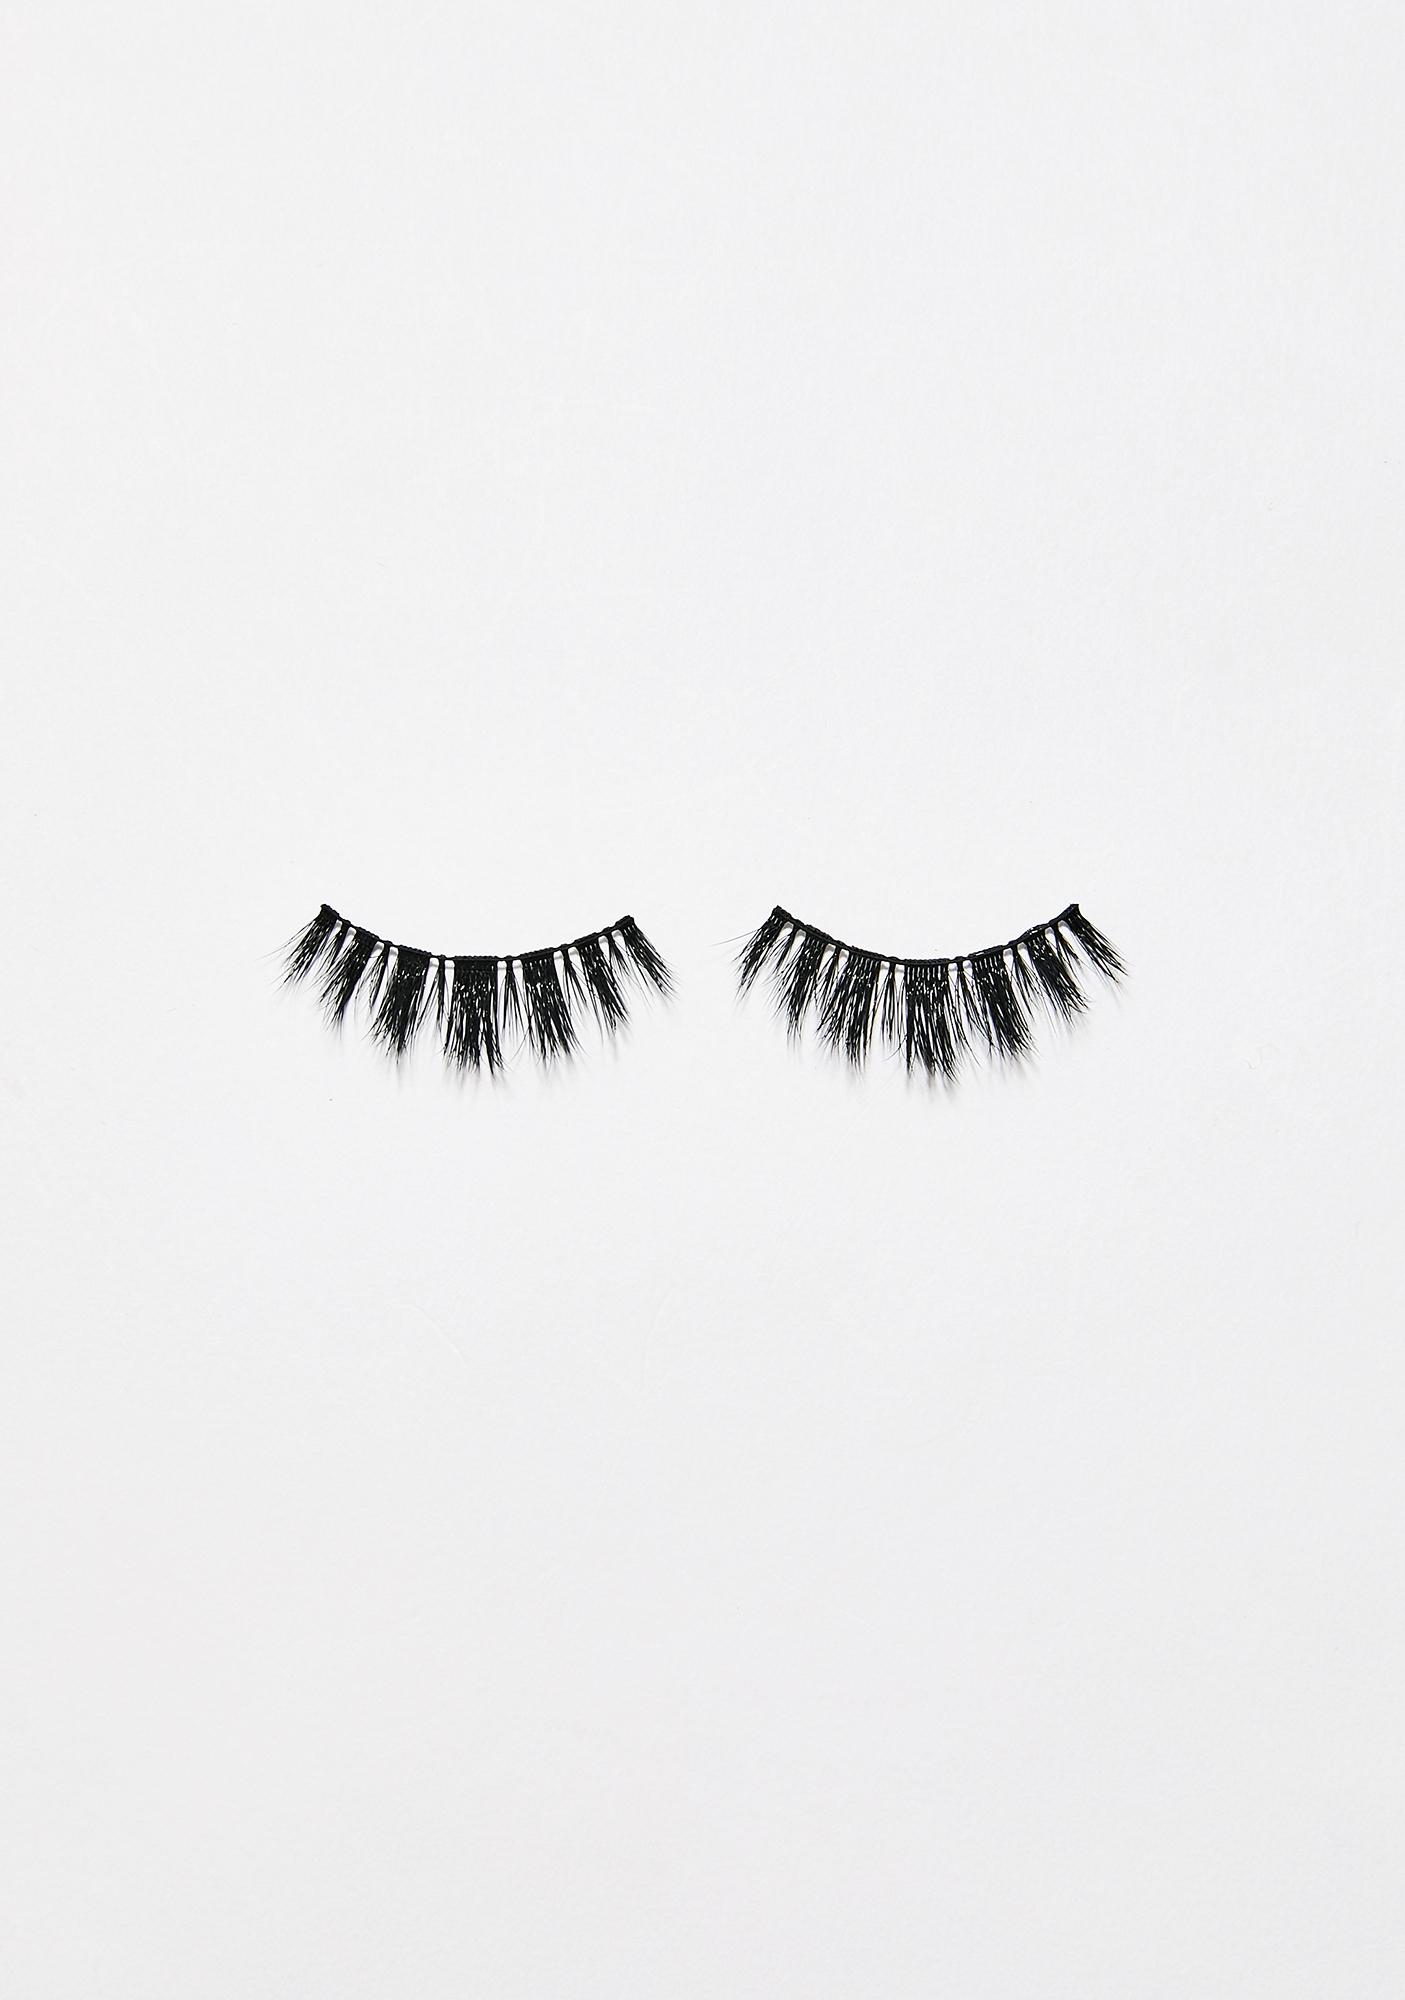 Rouge & Rogue Man-Eater Luxe Faux Mink Lashes